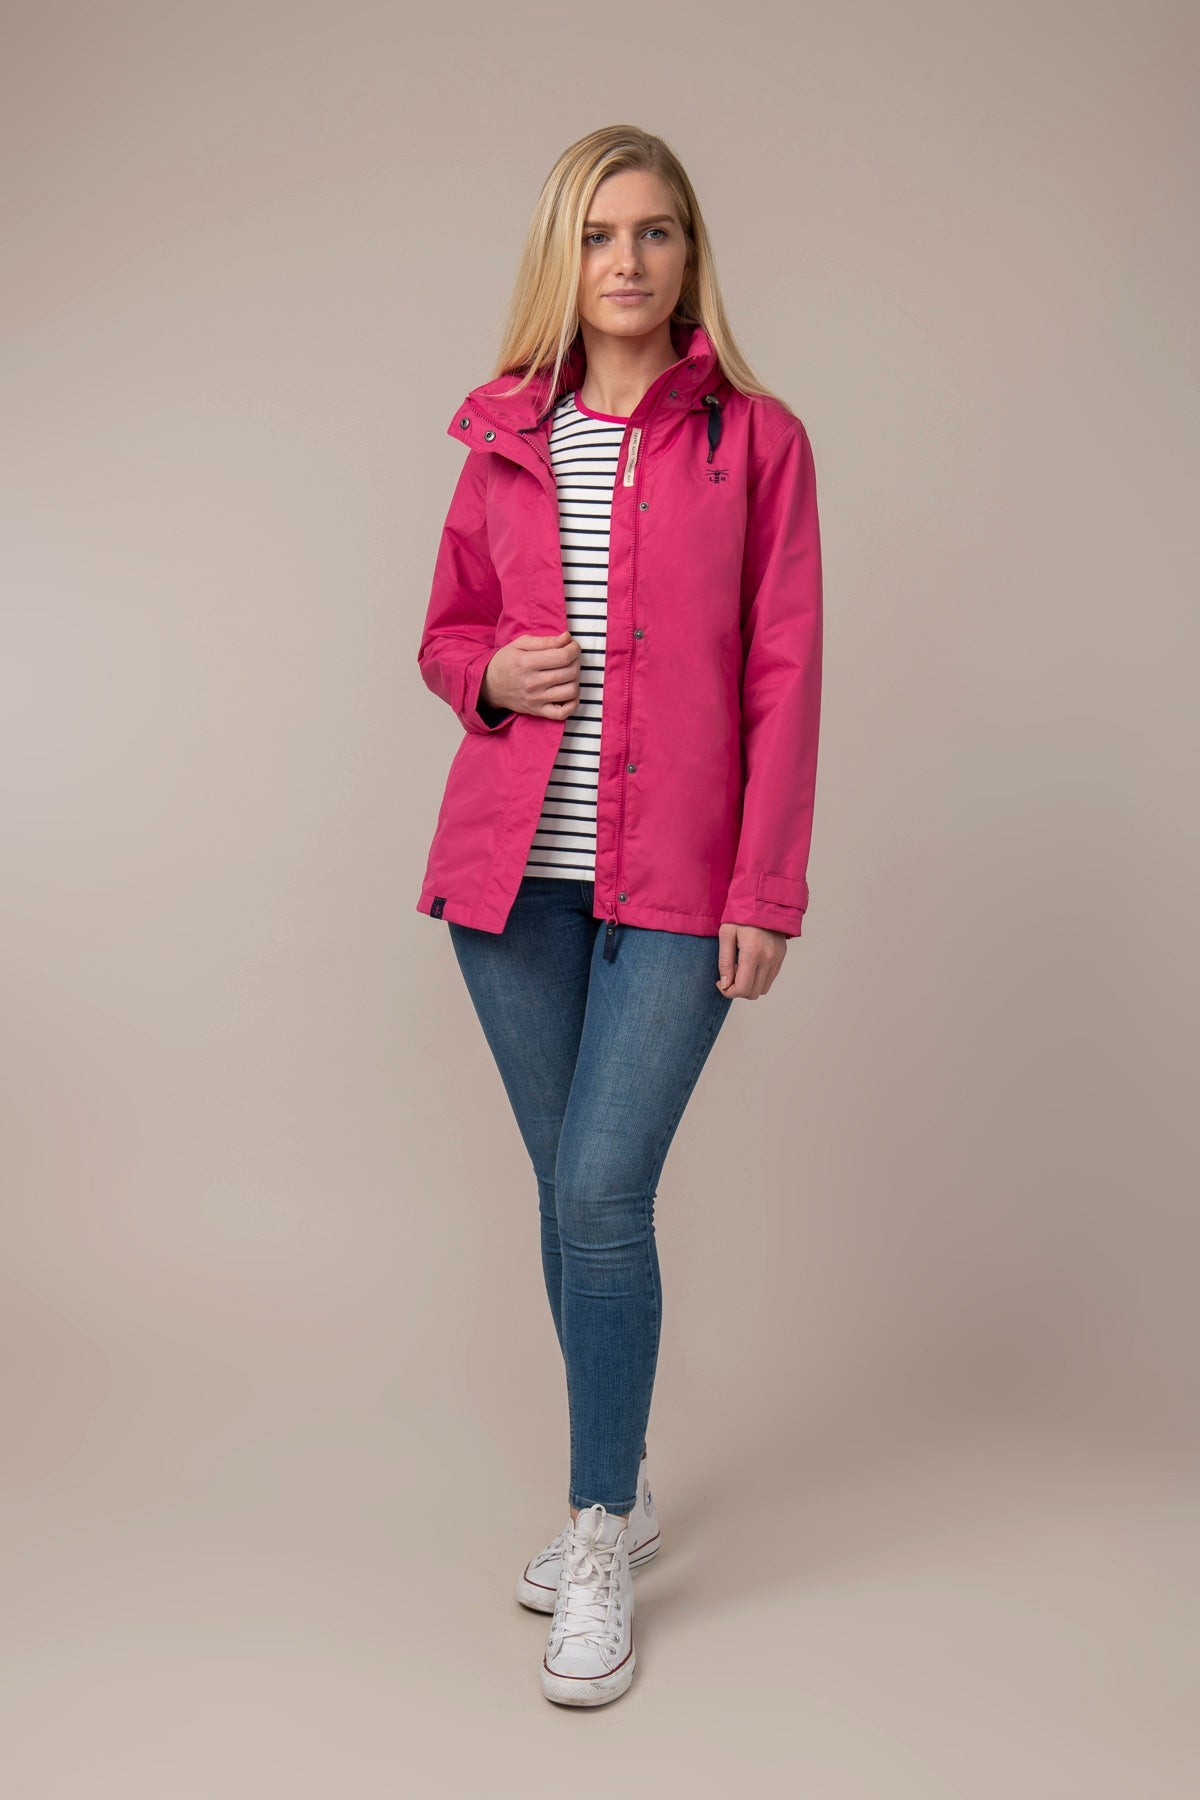 Beachcomber Jacket - Raspberry